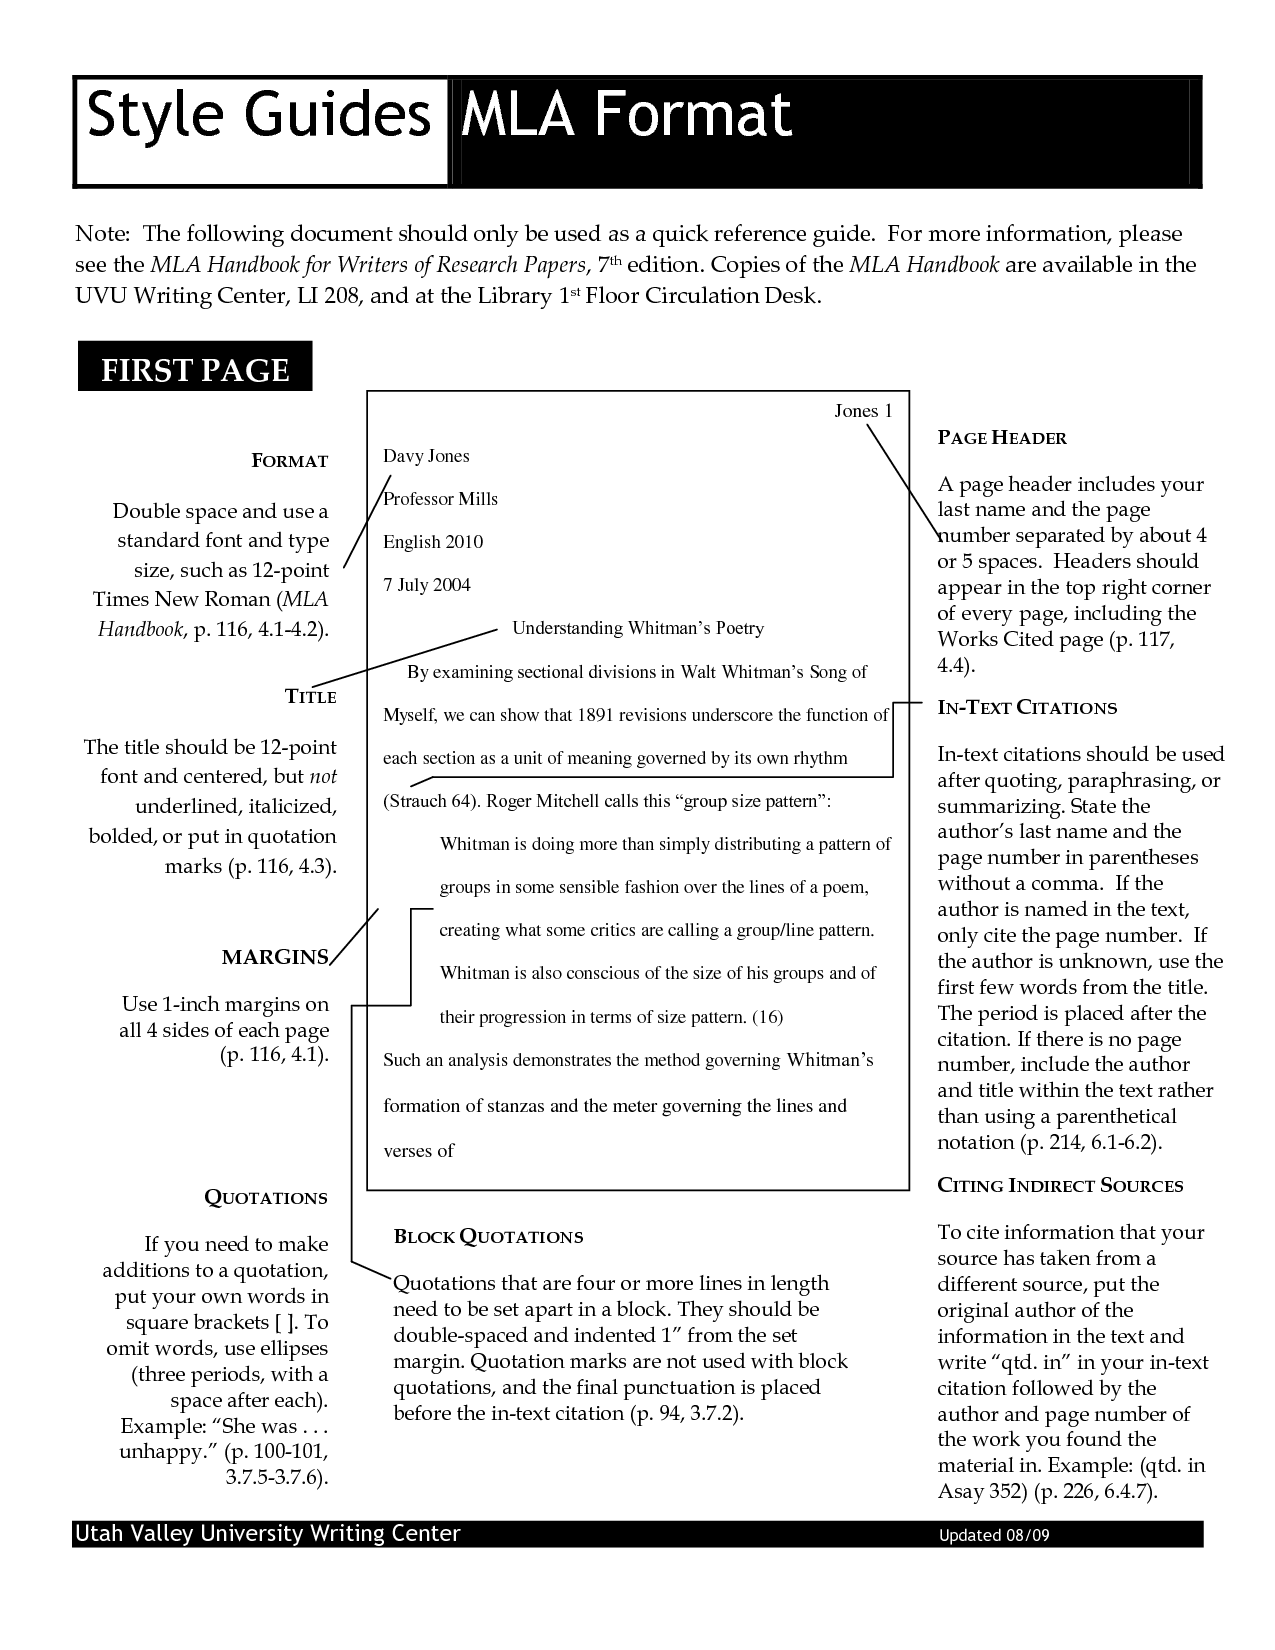 mla style headers How to properly format the mla format heading this page contains general guidelines on how to properly format the heading on your research paper using the mla.